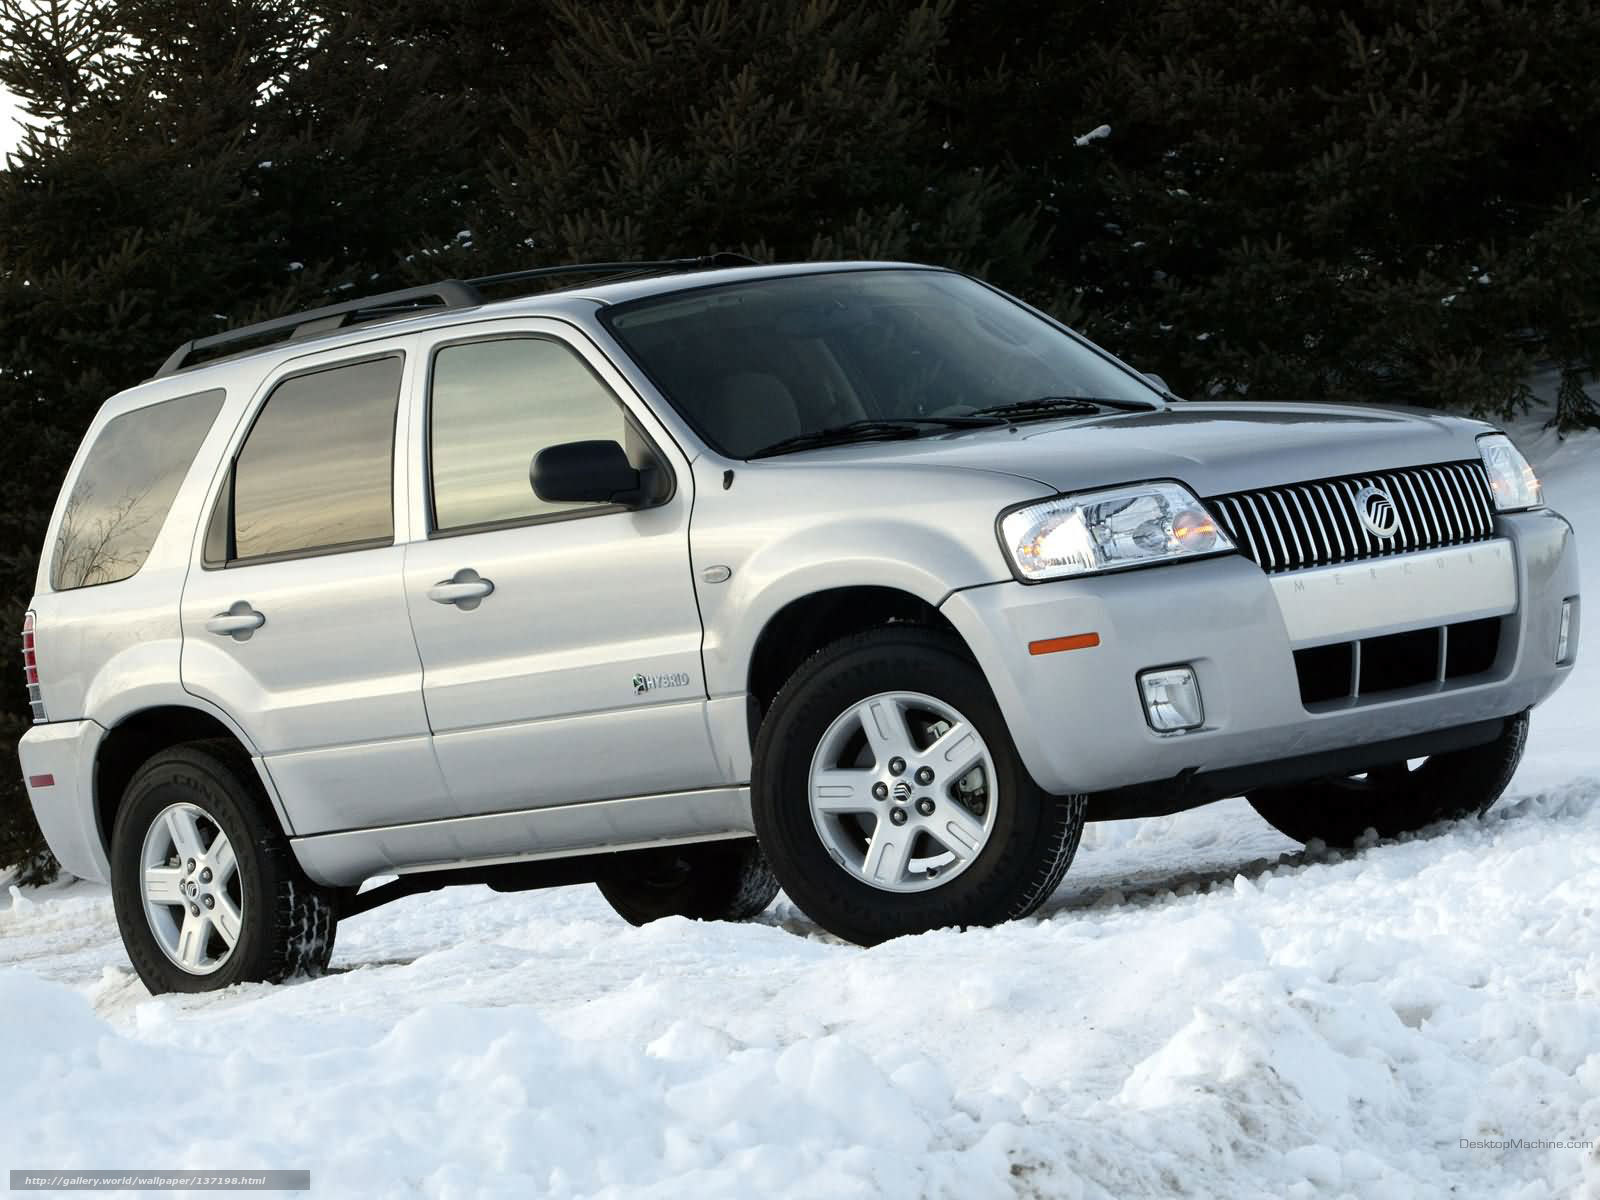 Mariner Car: Download Wallpaper Mercury, Mariner, Car, Machinery Free